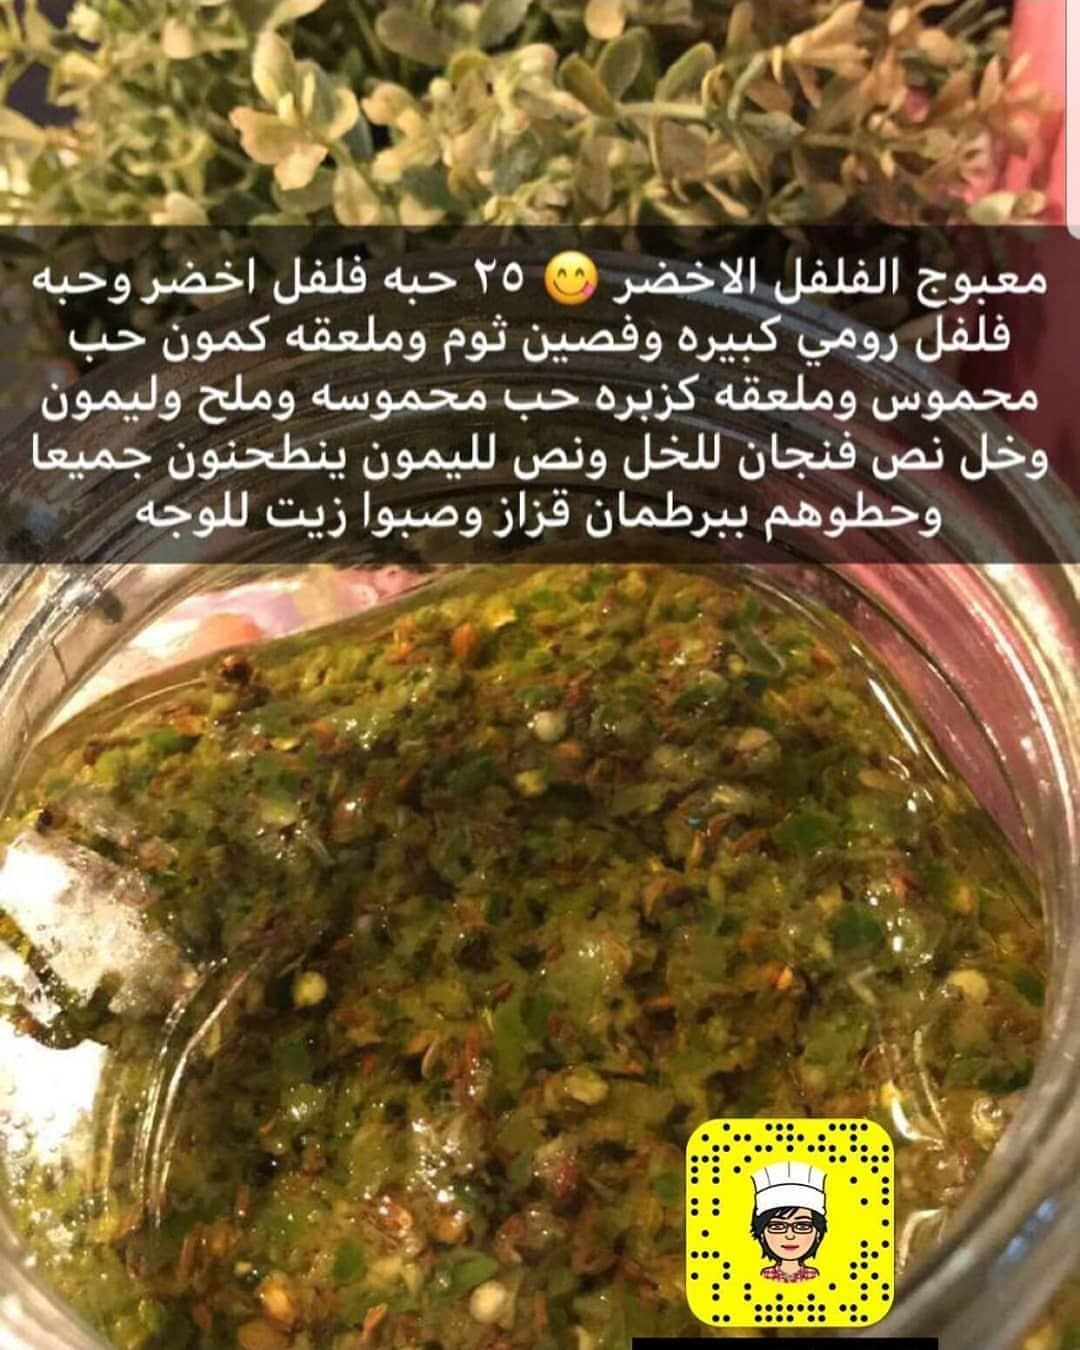 582 Likes 56 Comments Umfahad 65 On Instagram Cookout Food Spice Recipes Food Recipies